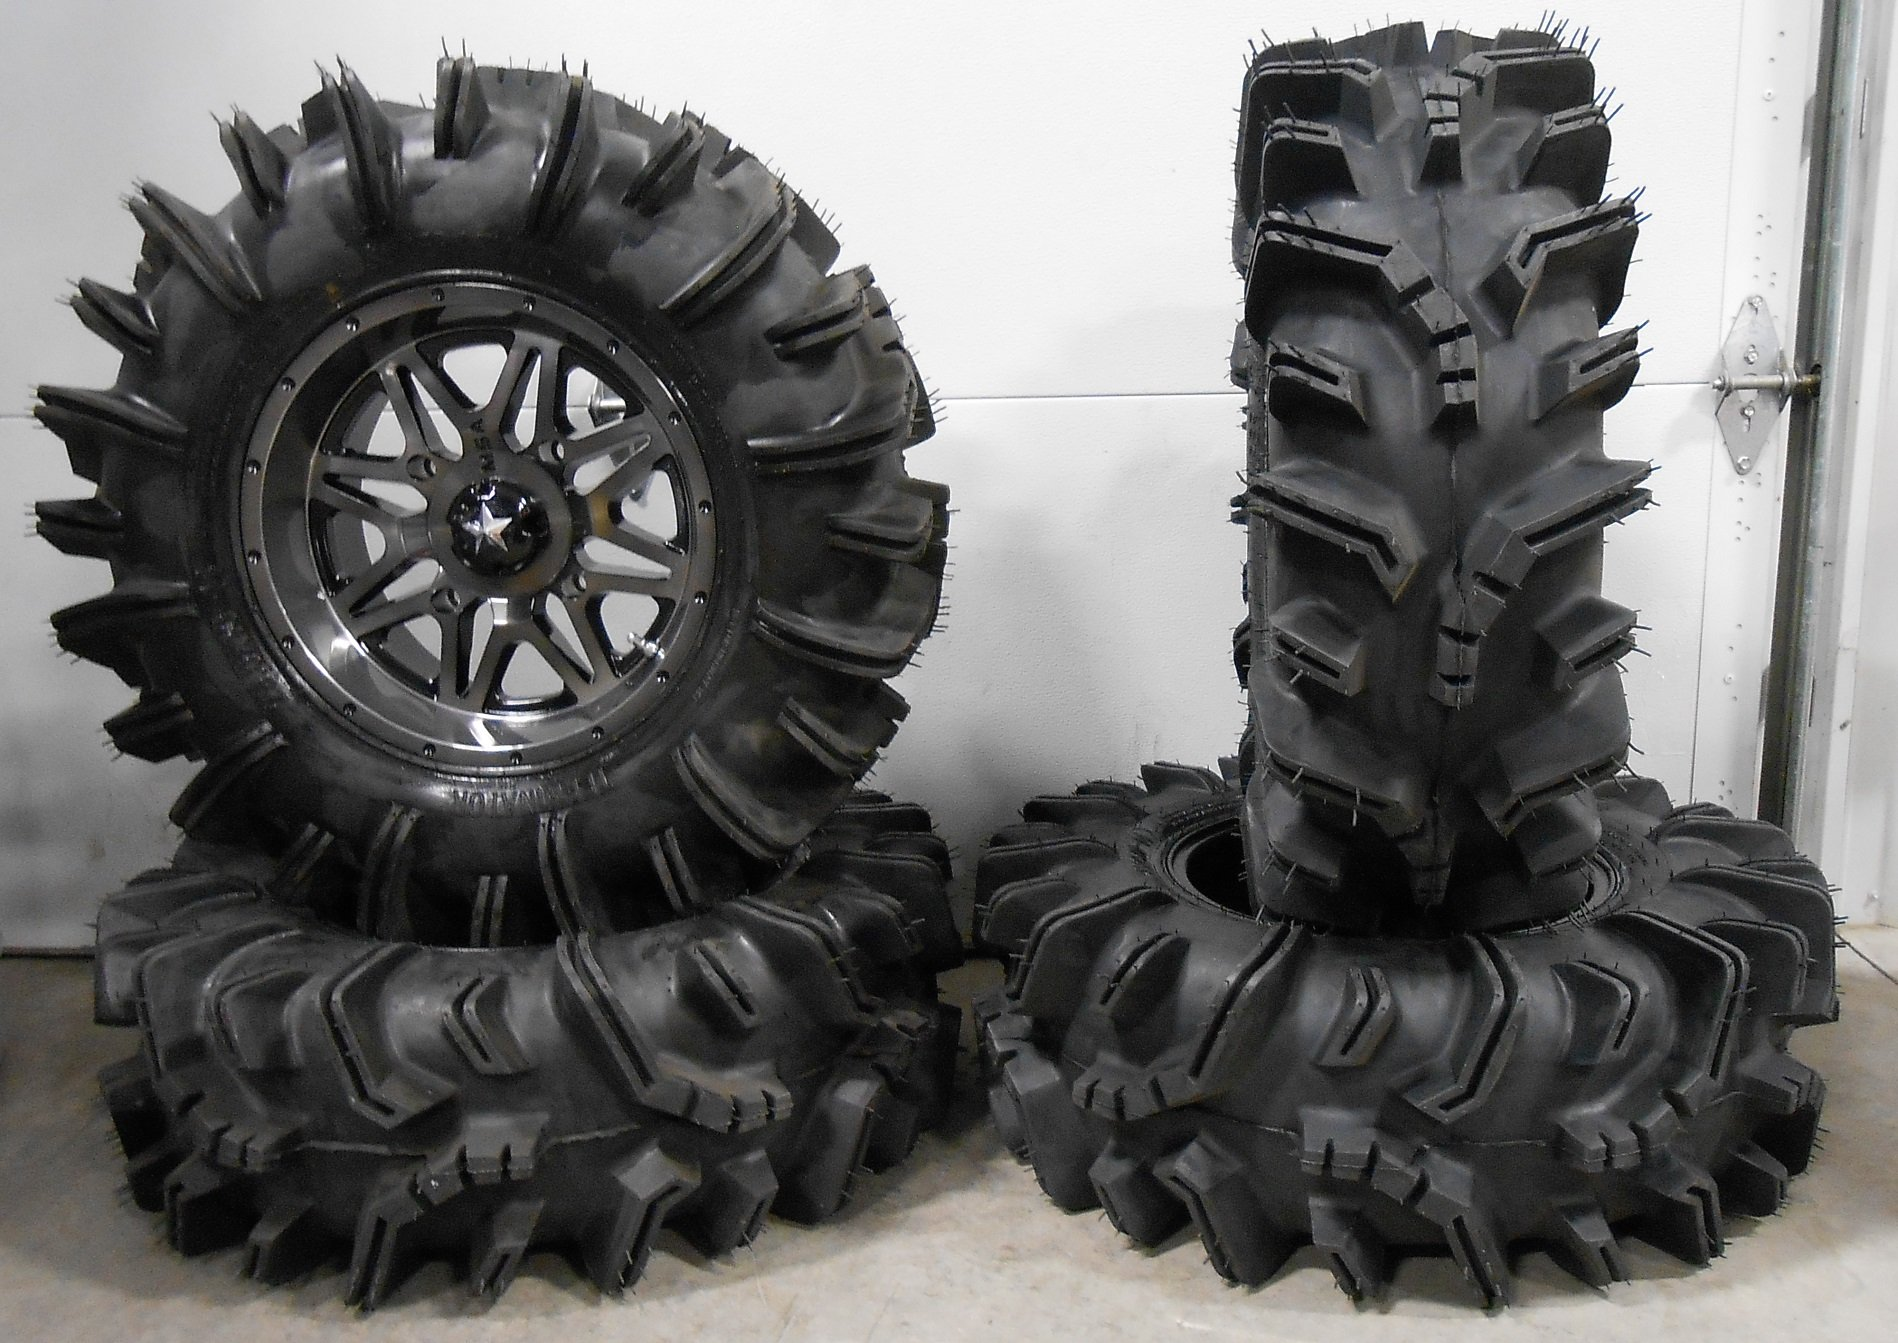 Bundle - 9 Items: MSA Dark Tint Vibe 14'' ATV Wheels 29.5'' Terminator Tires [4x156 Bolt Pattern 12mmx1.5 Lug Kit]